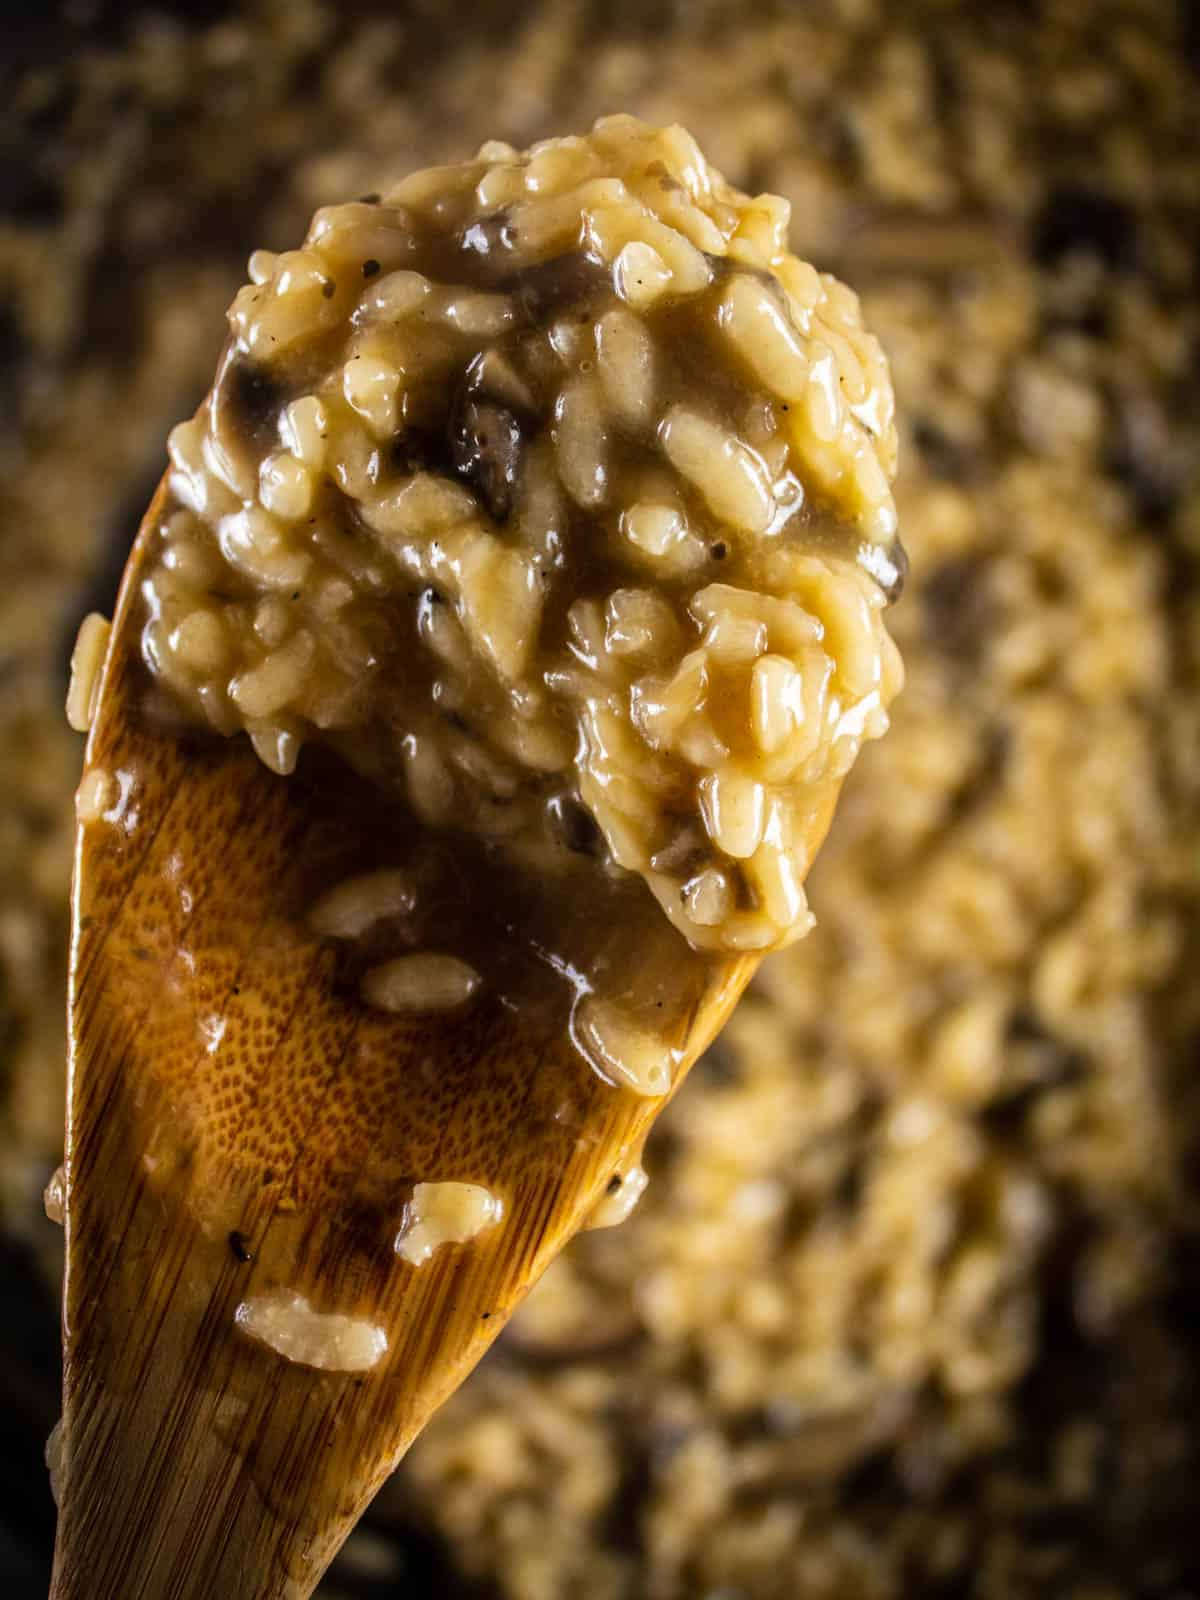 wooden spoon with a scoop of cooked mushroom risotto